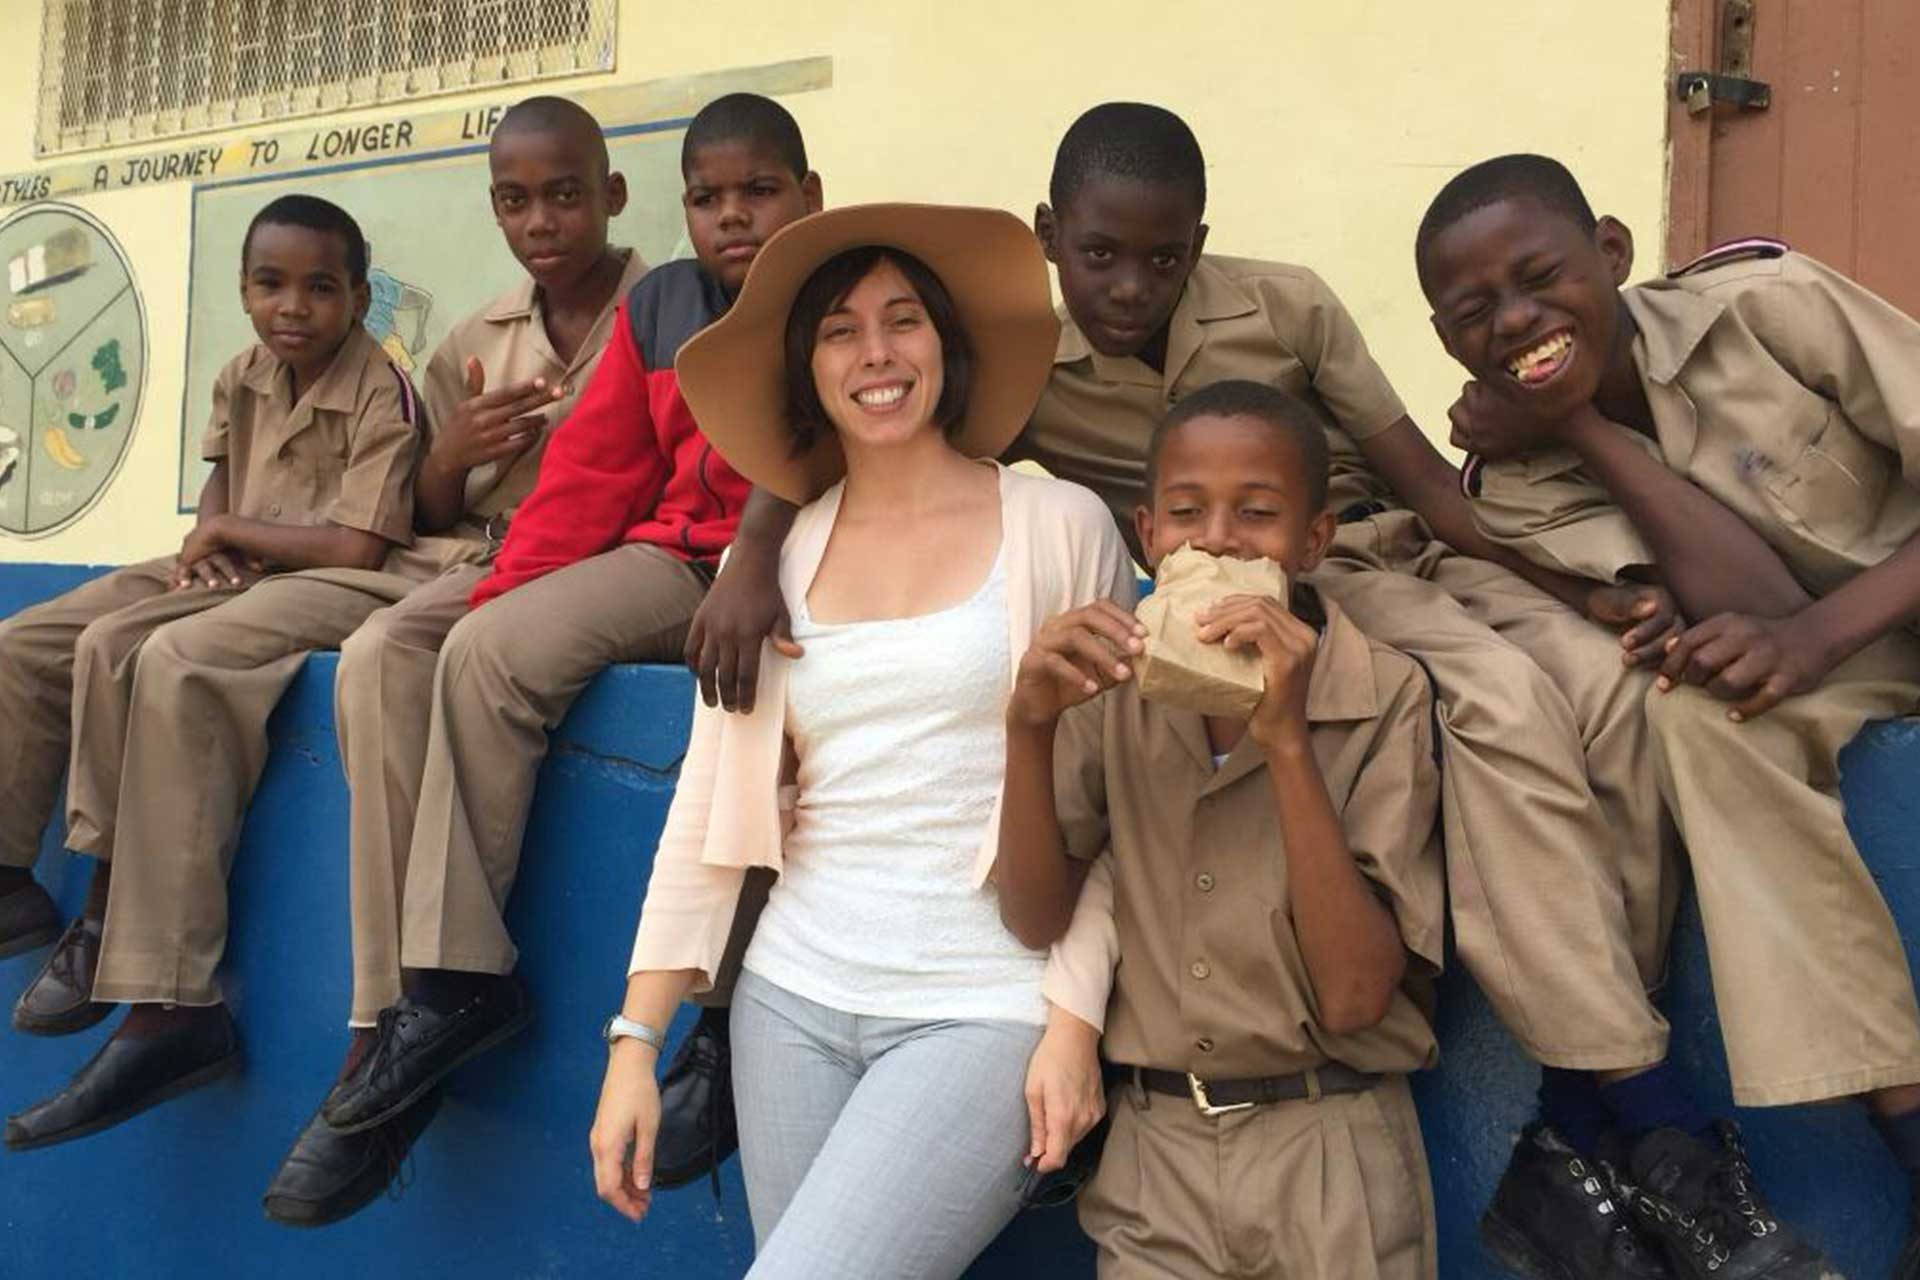 us federal government helping developing countries through peace corps